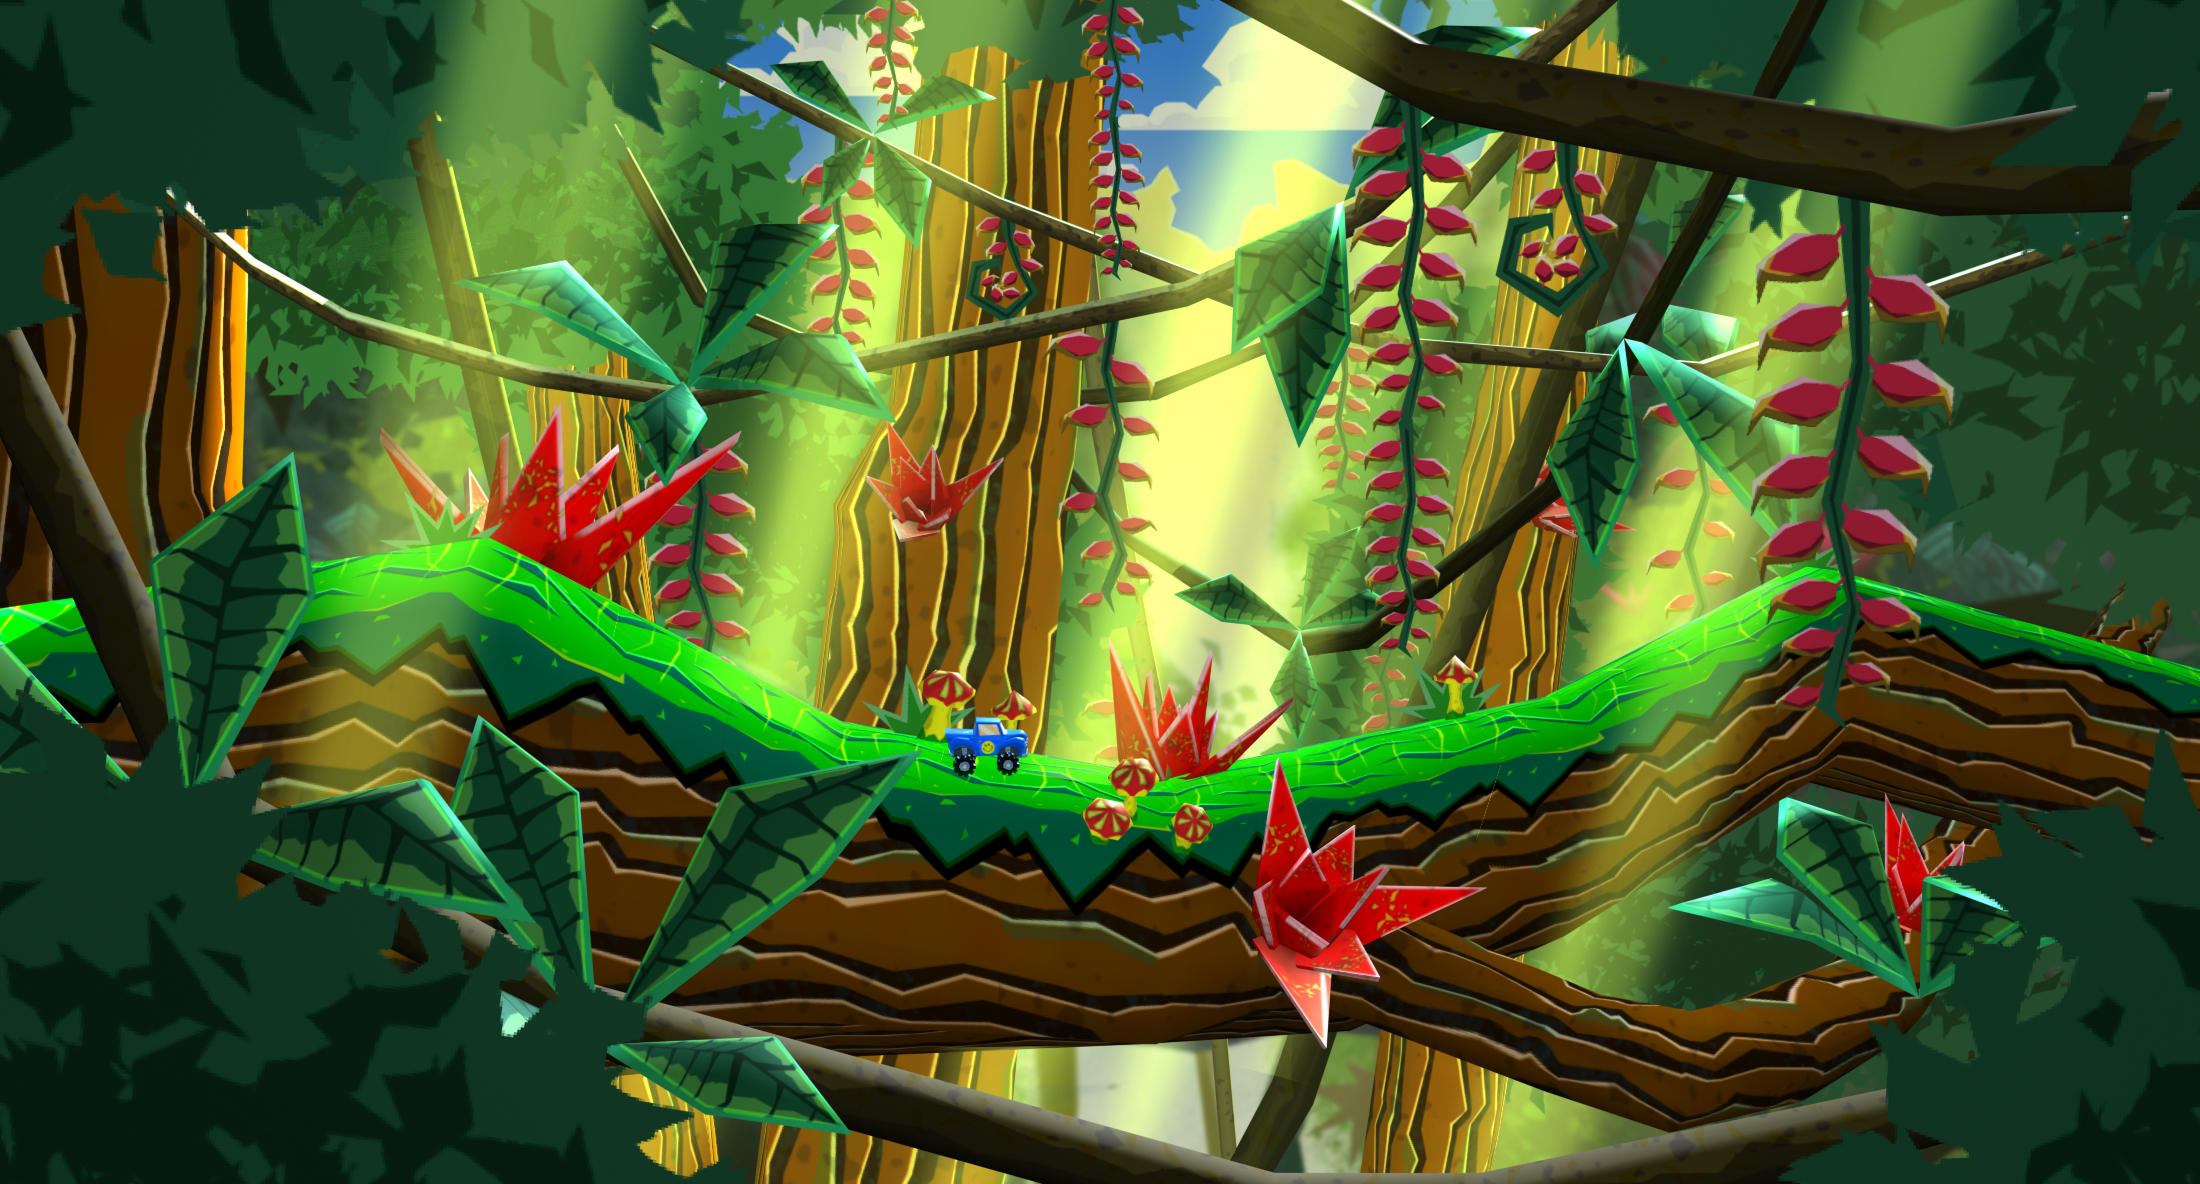 jungle_01_colorCorrections